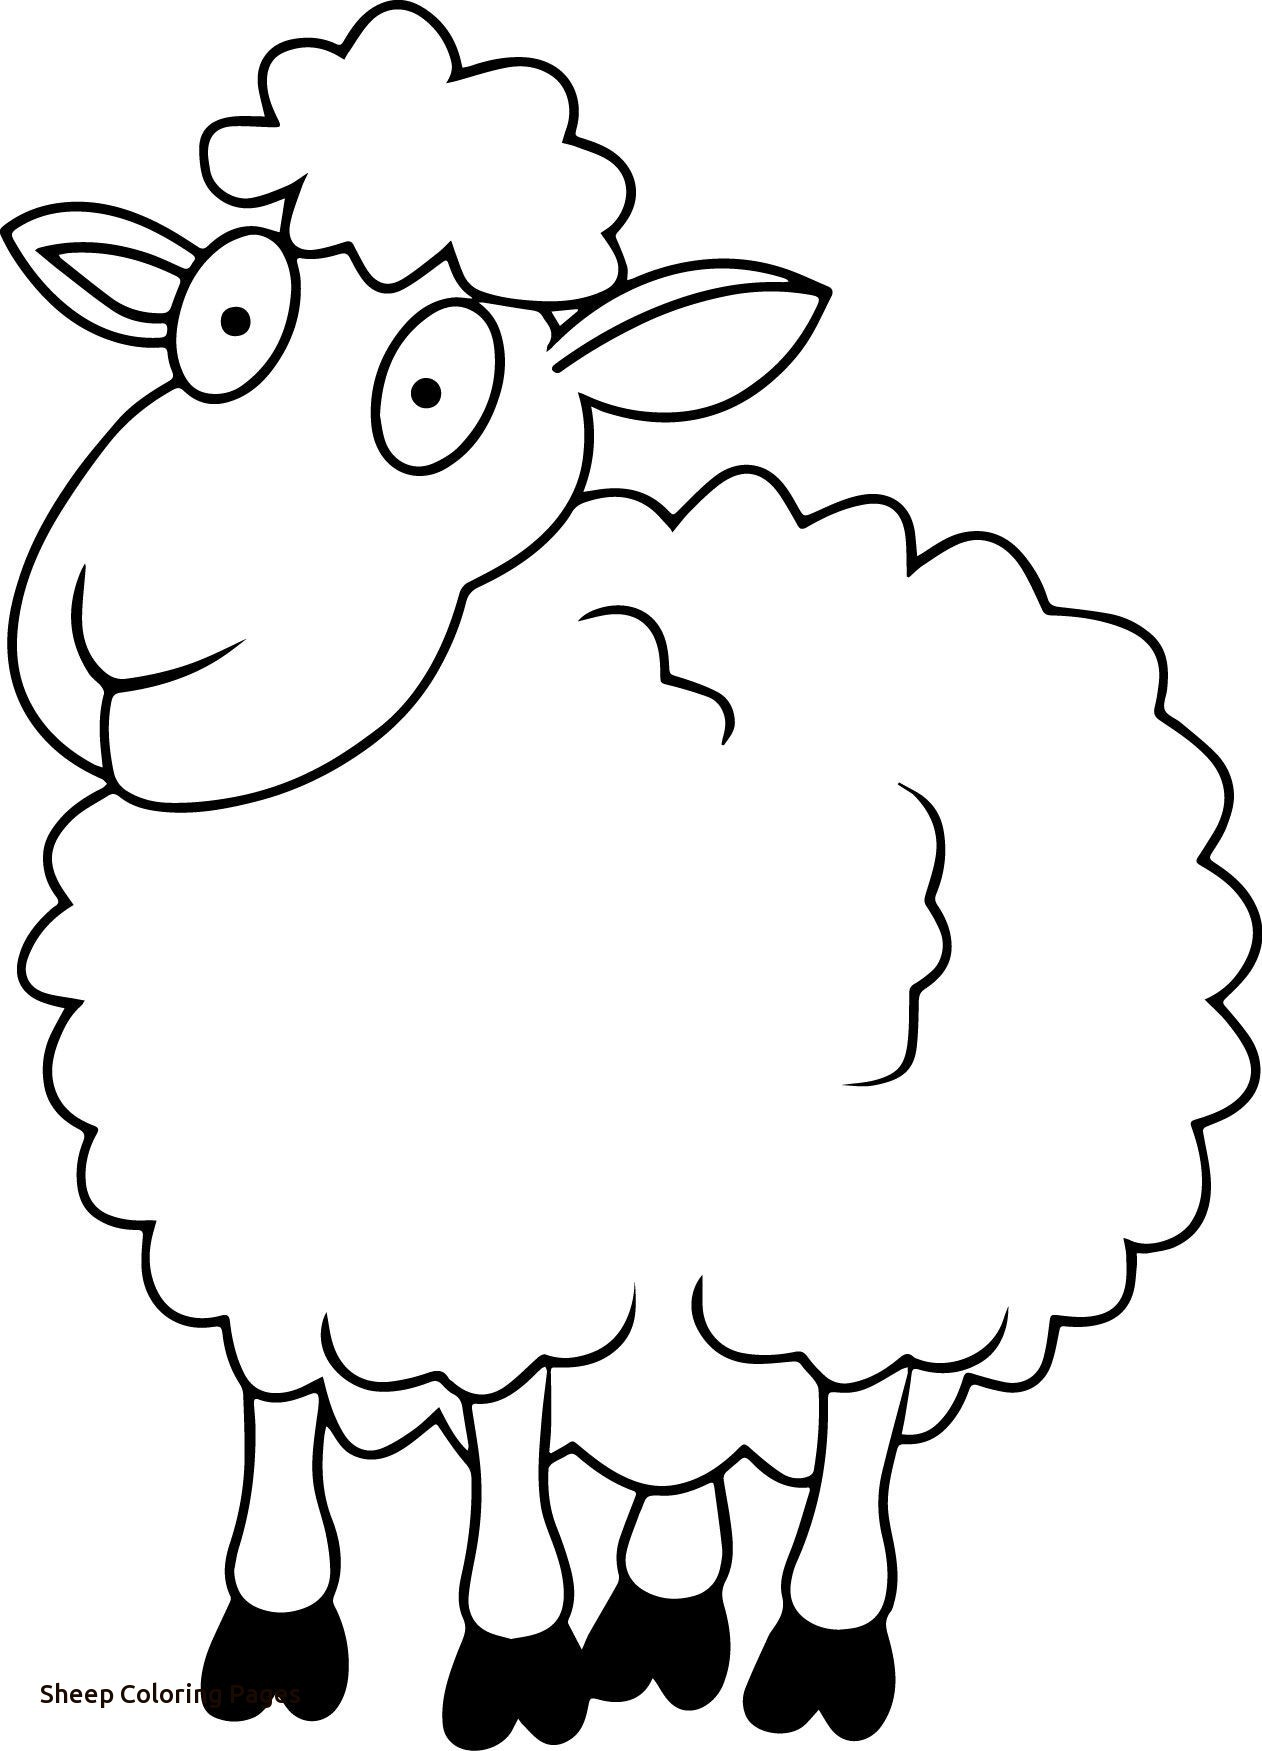 Sheep Outline Drawing At Getdrawings